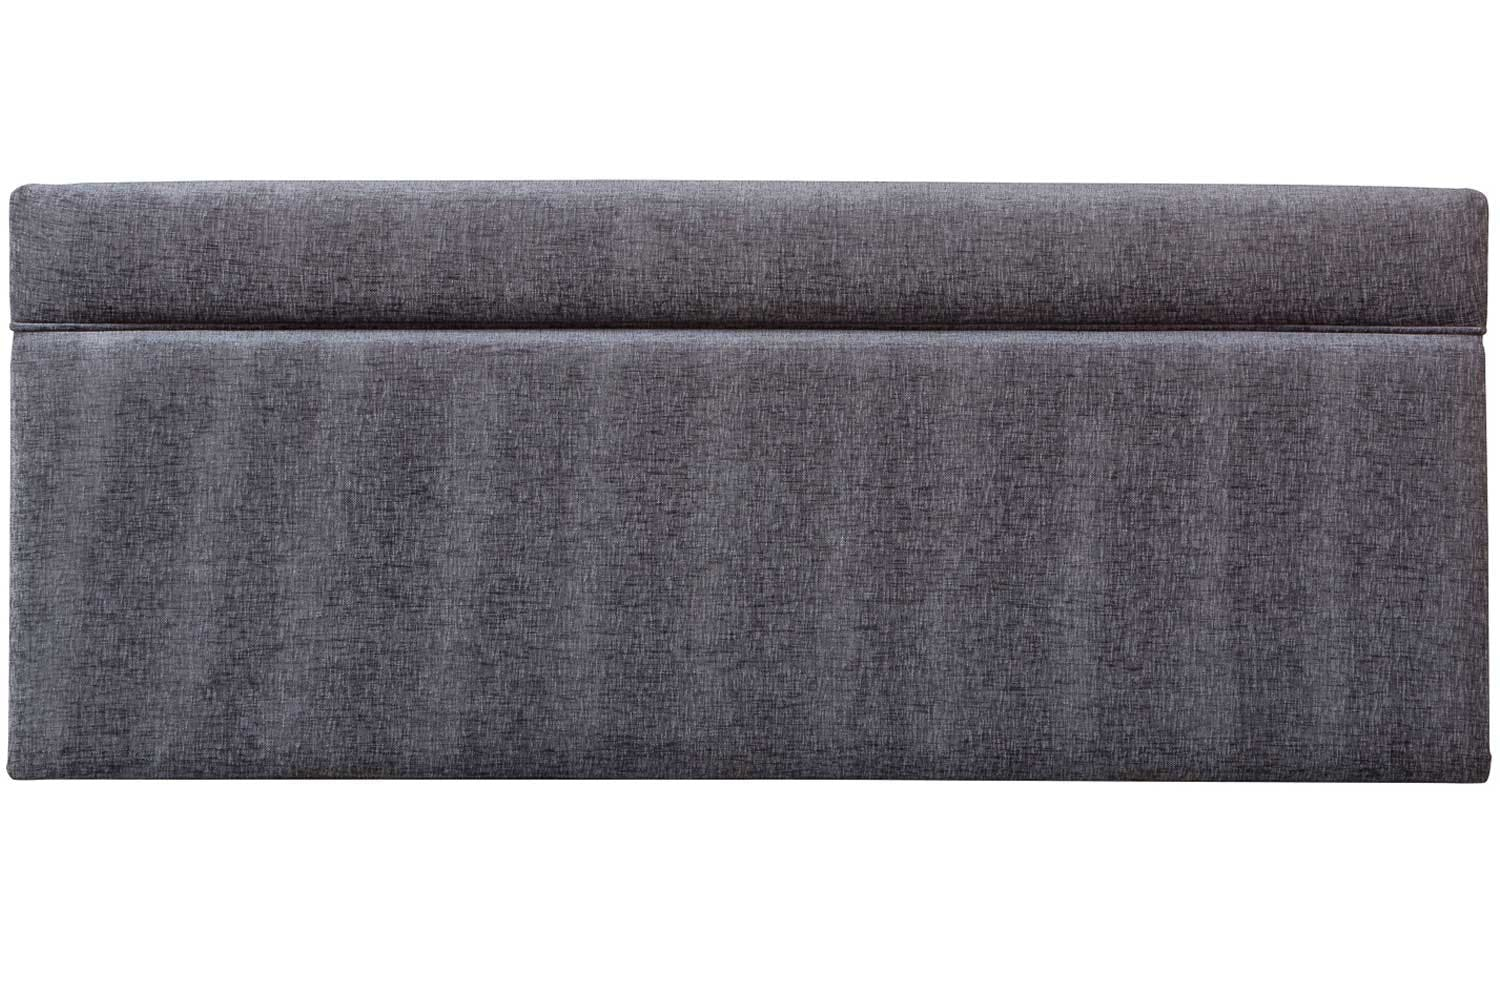 Elton Fabric Headboard | 6ft